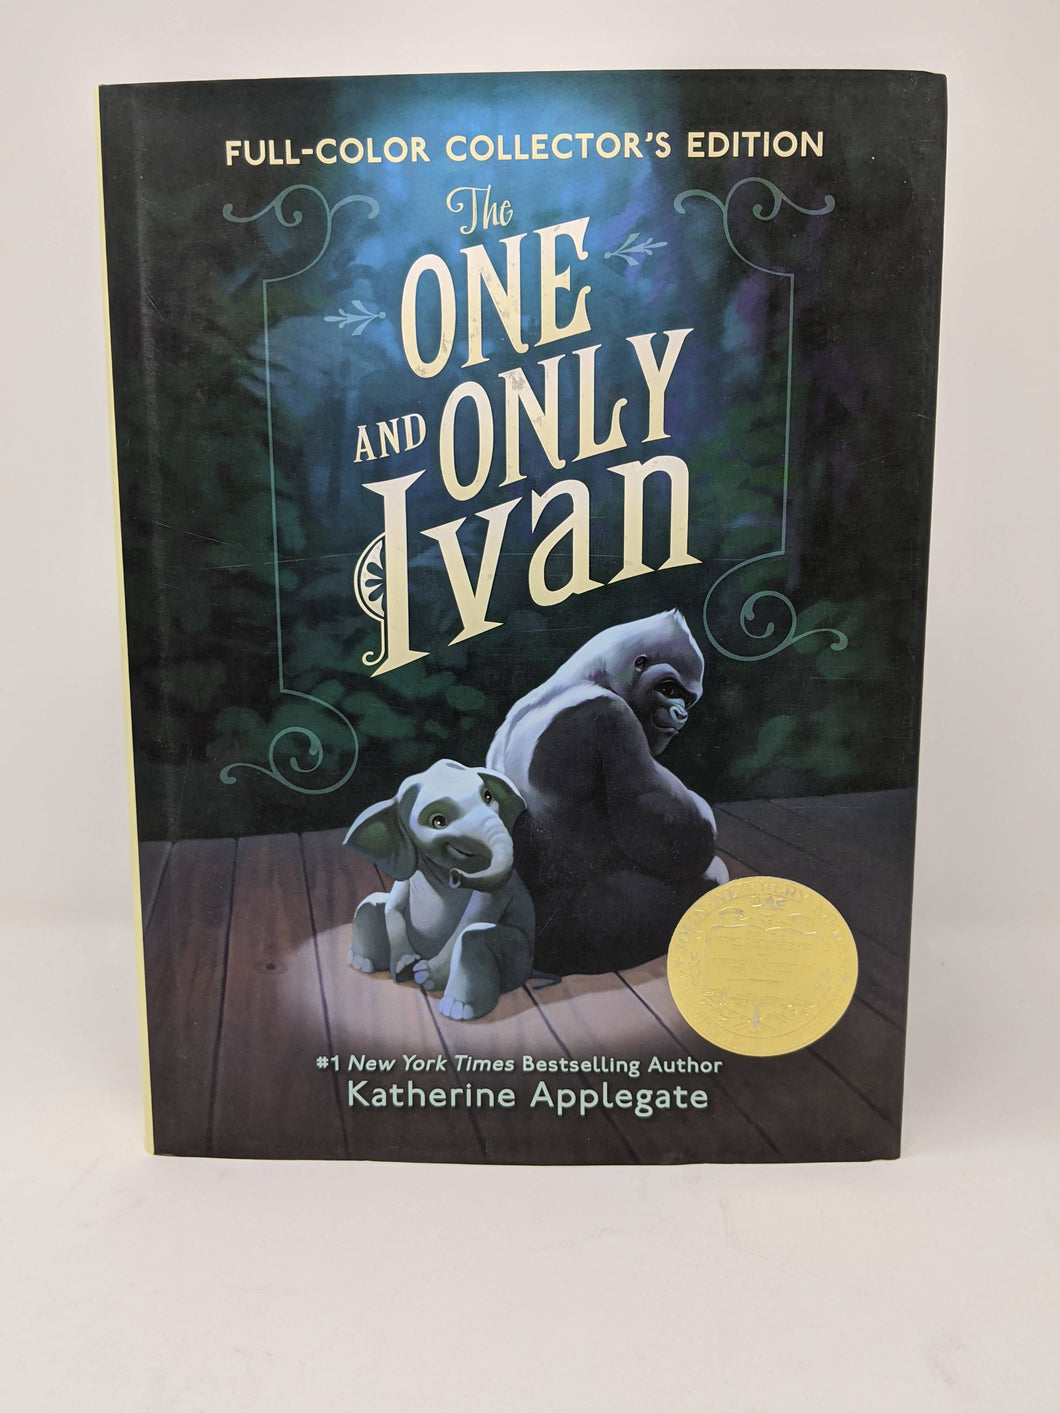 SALE-THE ONE AND ONLY IVAN- FULL COLOR COLLECTOR'S EDITION